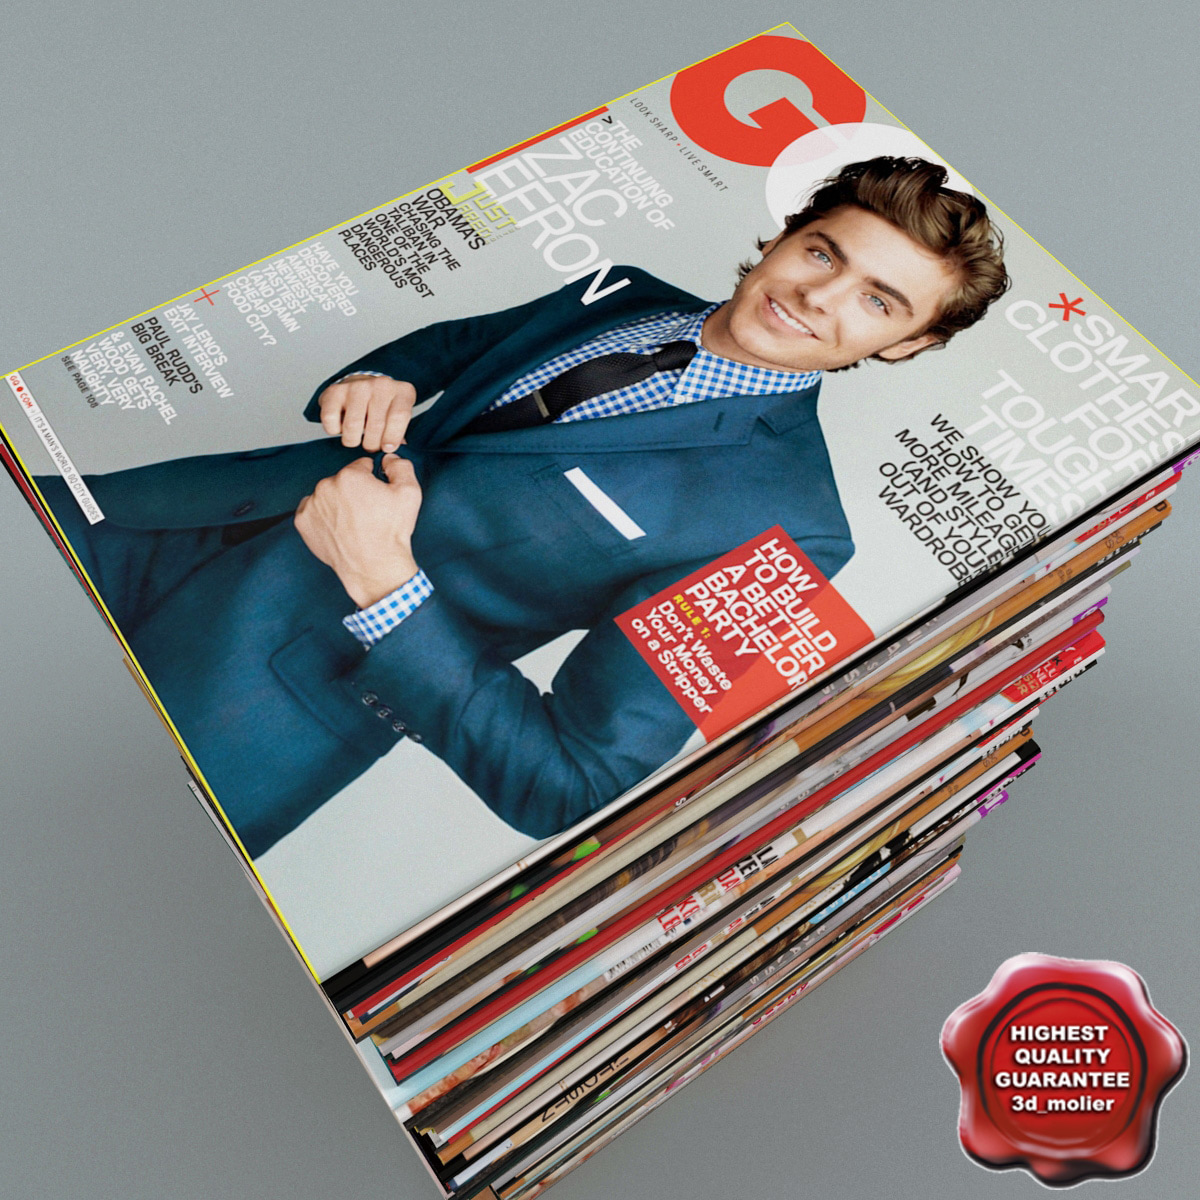 3d magazines set modelled